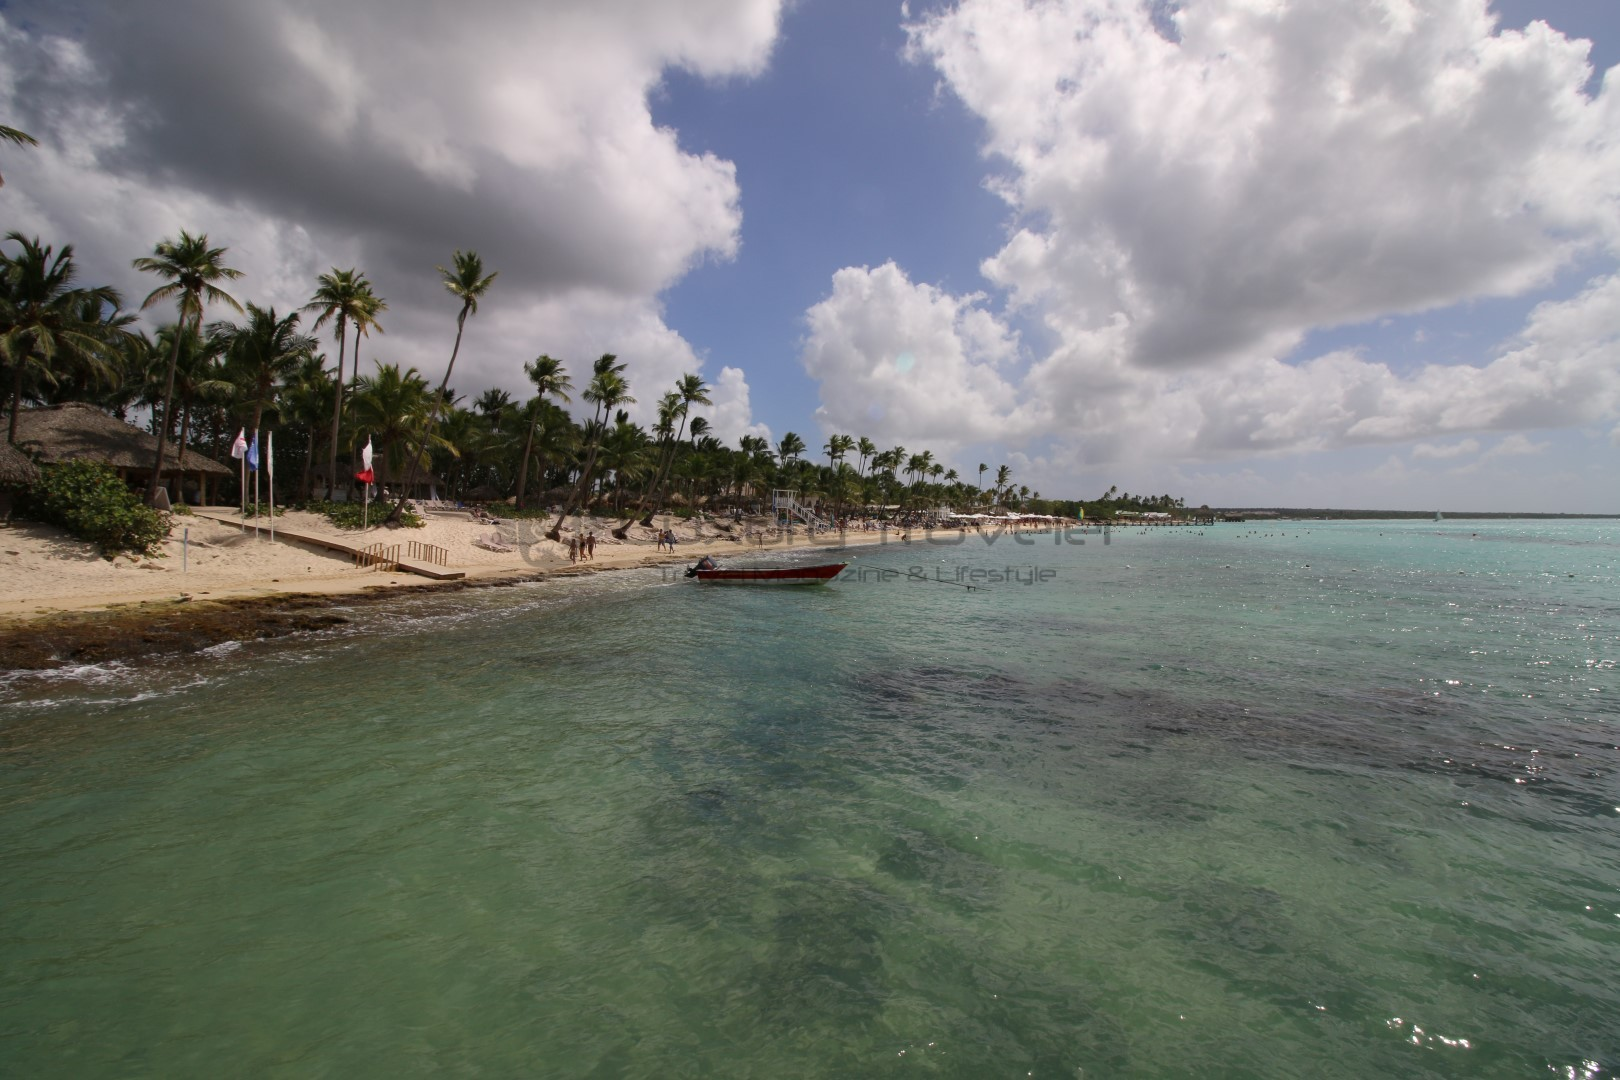 Iberostar_Hacienda_Dominicus_Republica_Dominicana_Hotel_Beach